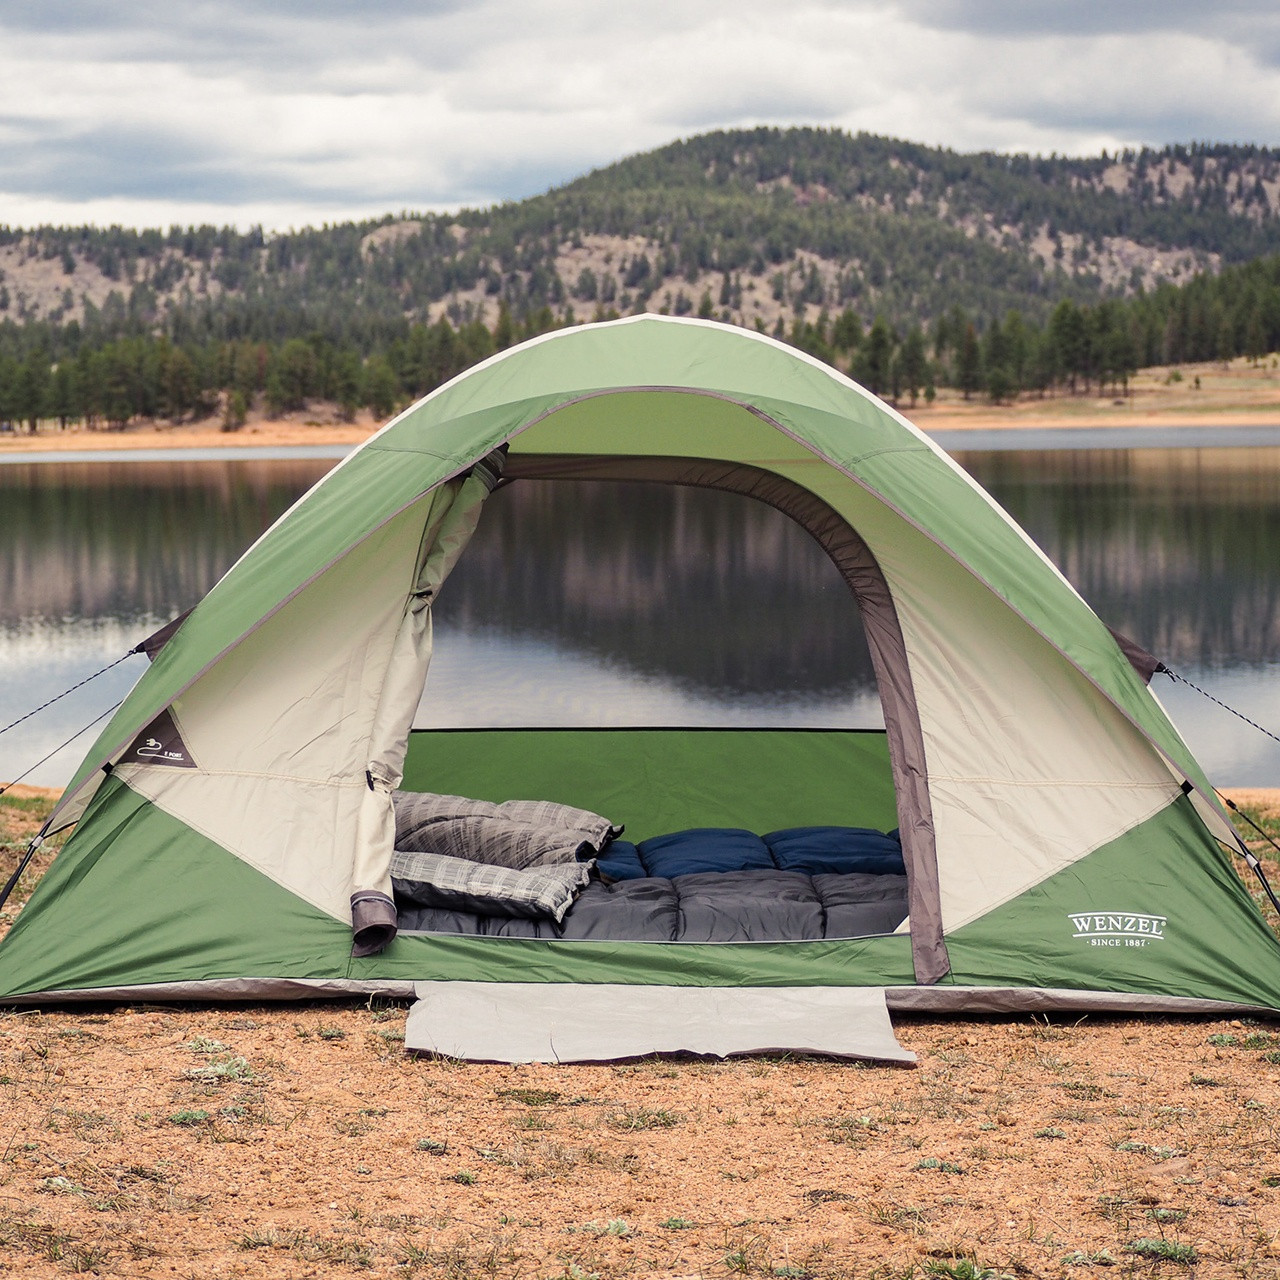 Wenzel Jack Pine 4 Person Dome Tent, shown pitched in front of a lake